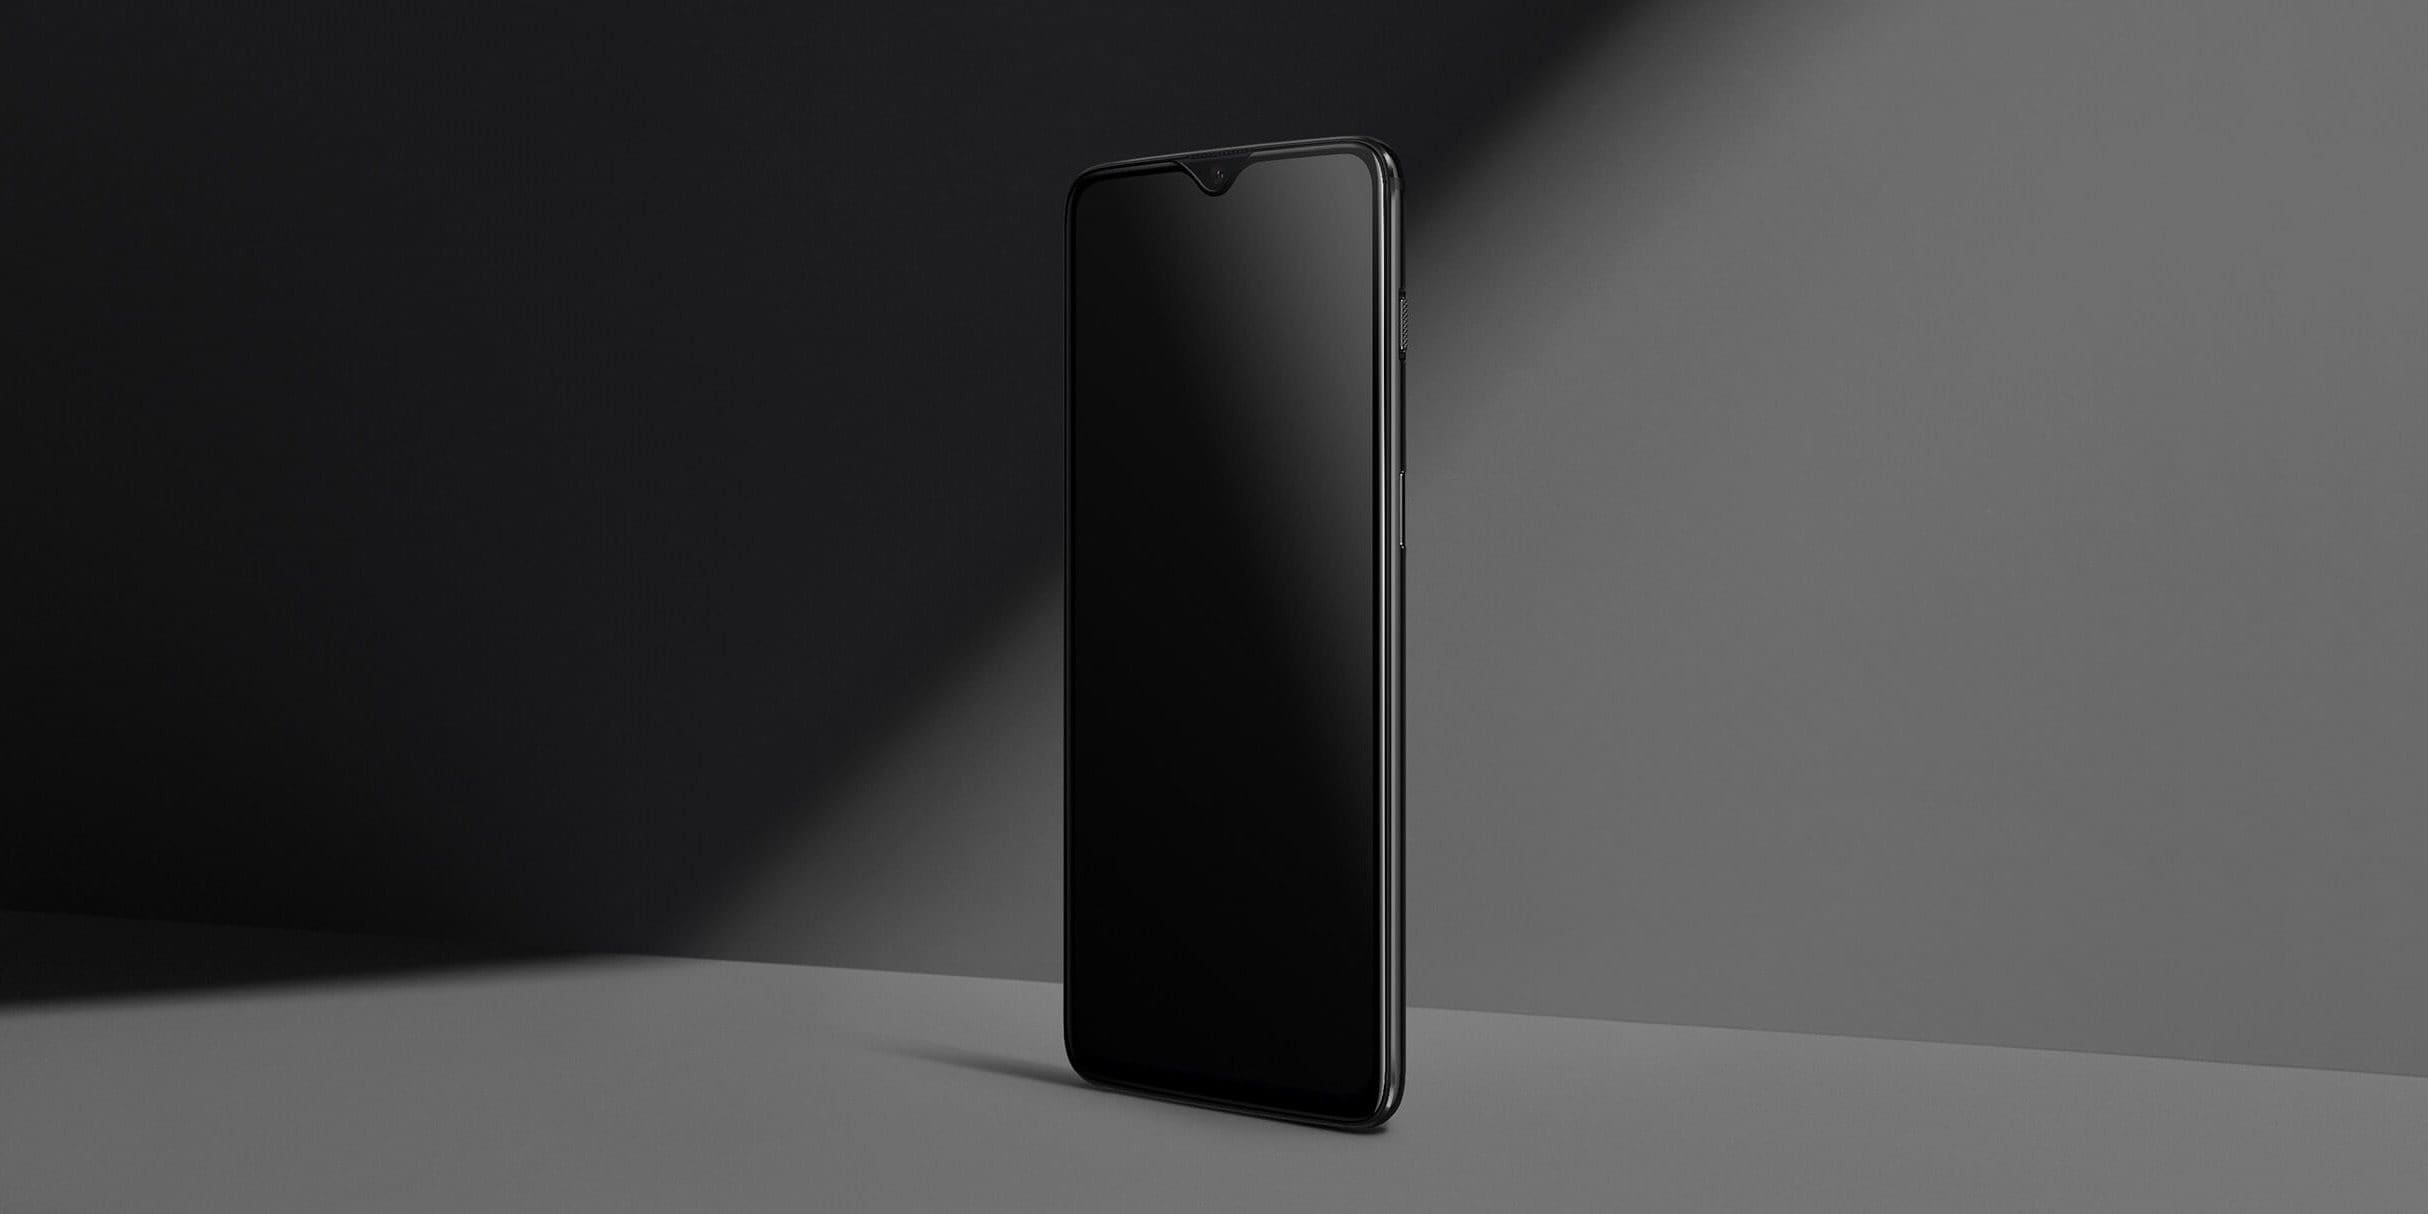 oneplus_6t_tempered_glass_screen_protector_2 (1)